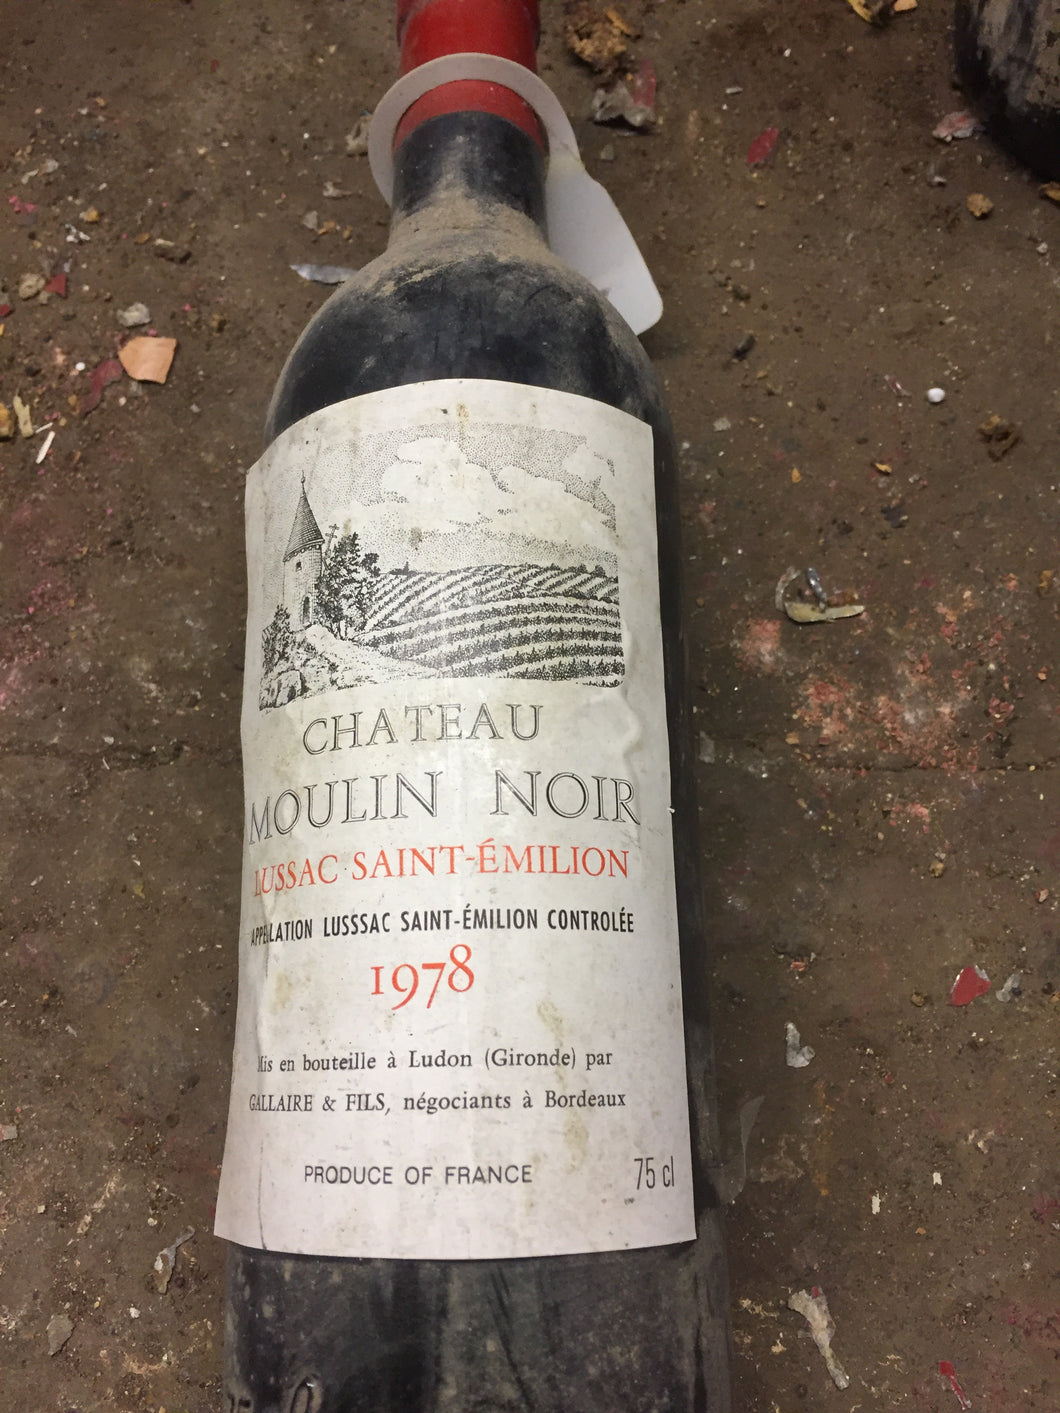 1978 Chateau Moulin Noir - Benson Fine Wines